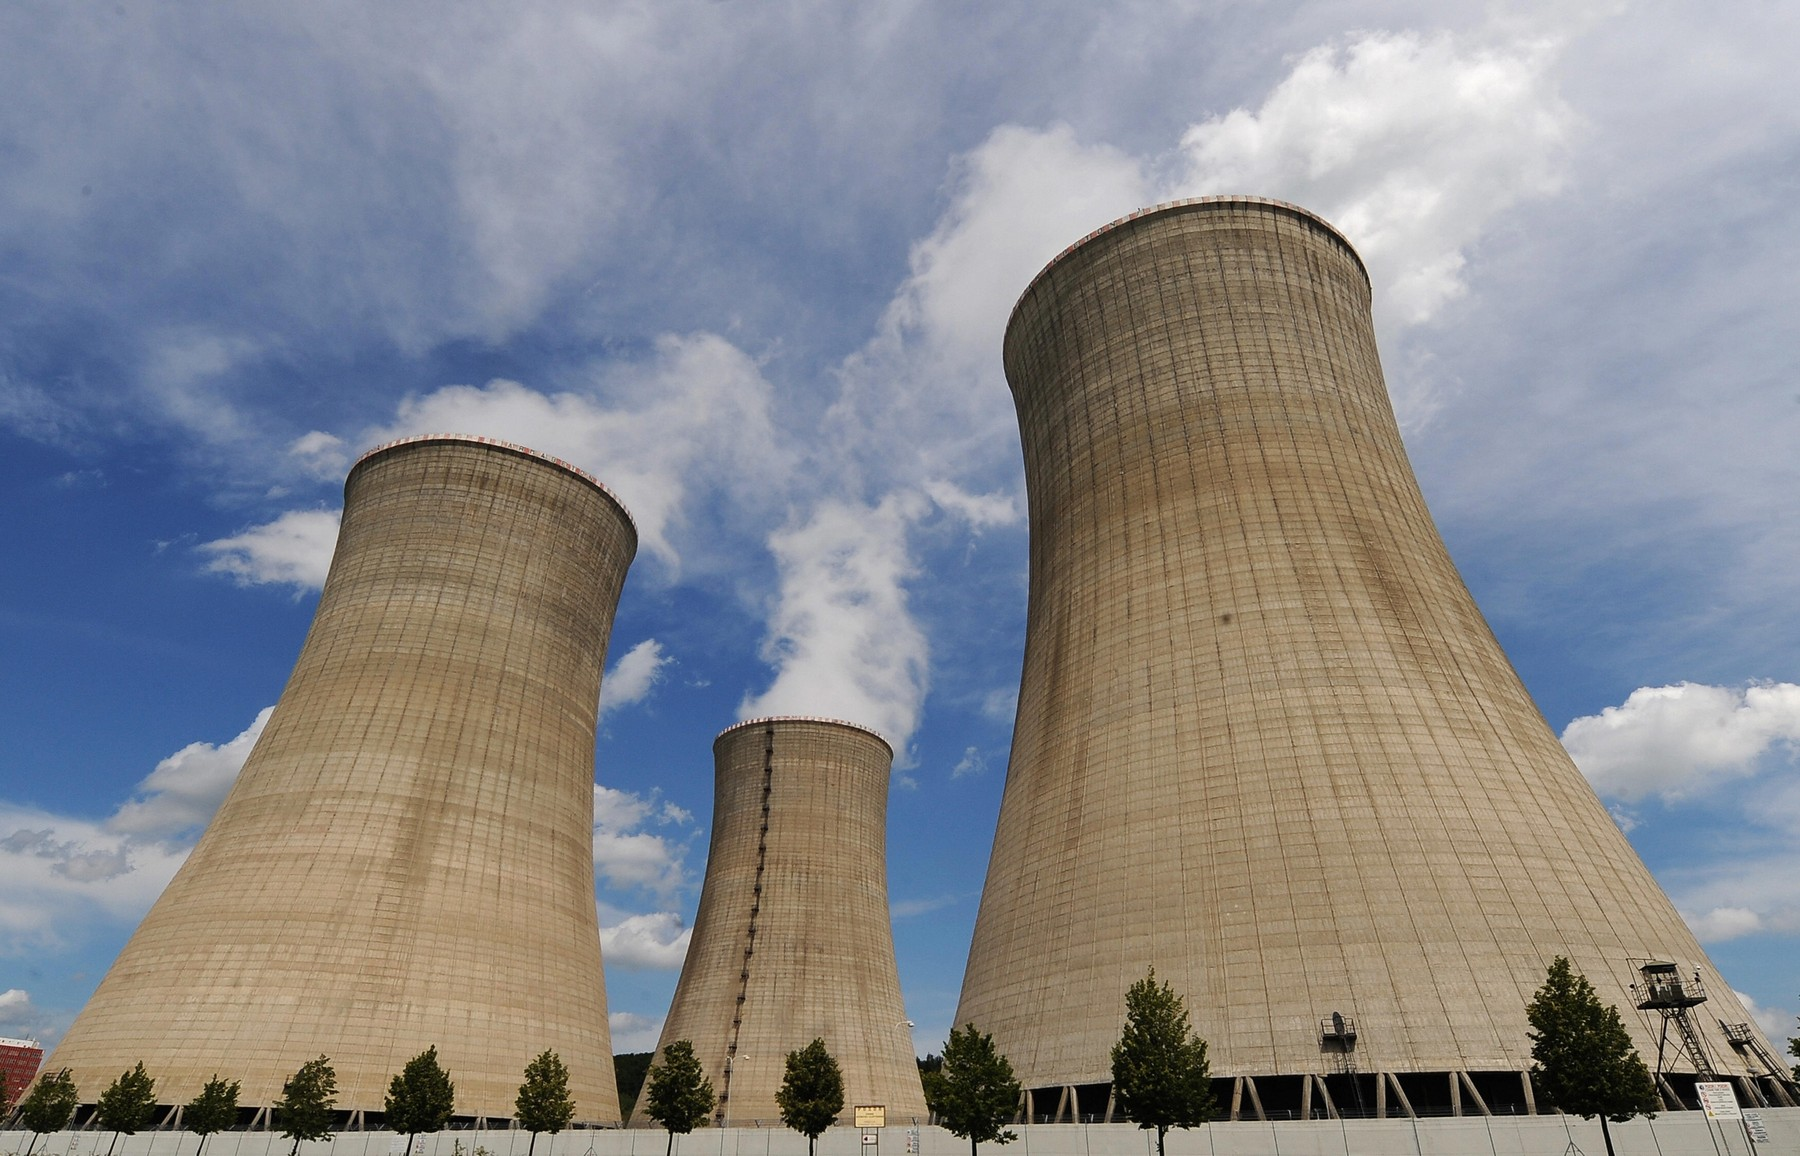 Macau government in talks with Guangdong over nuclear plant safety